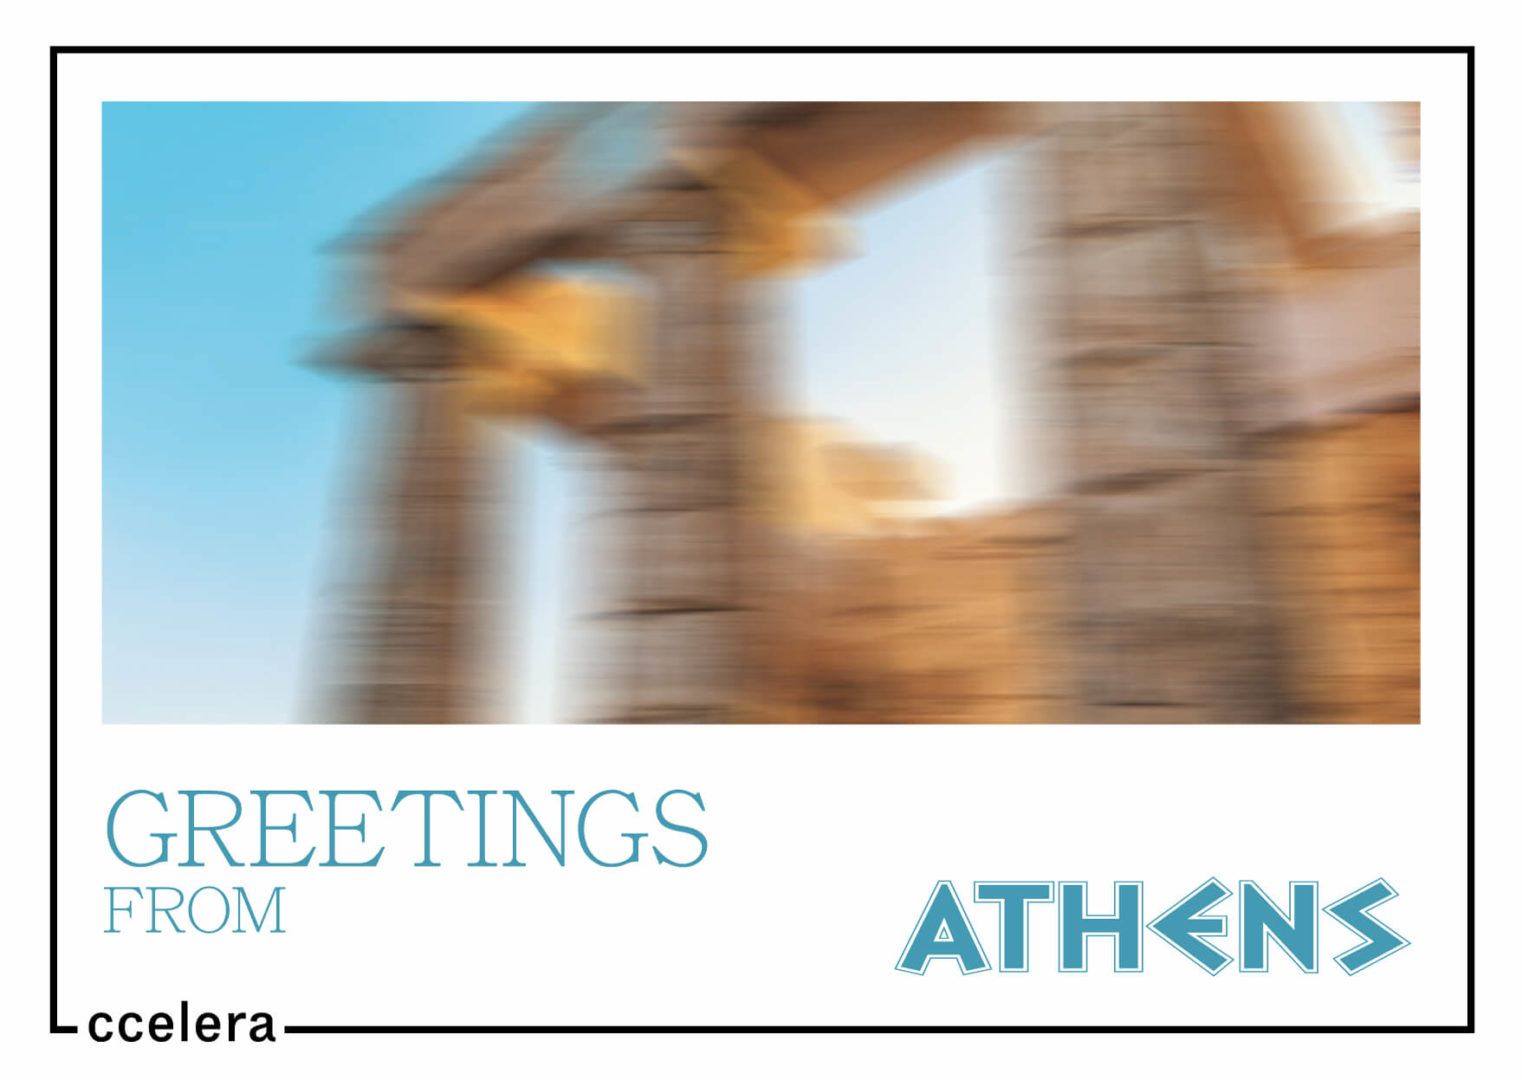 a postcard from athens